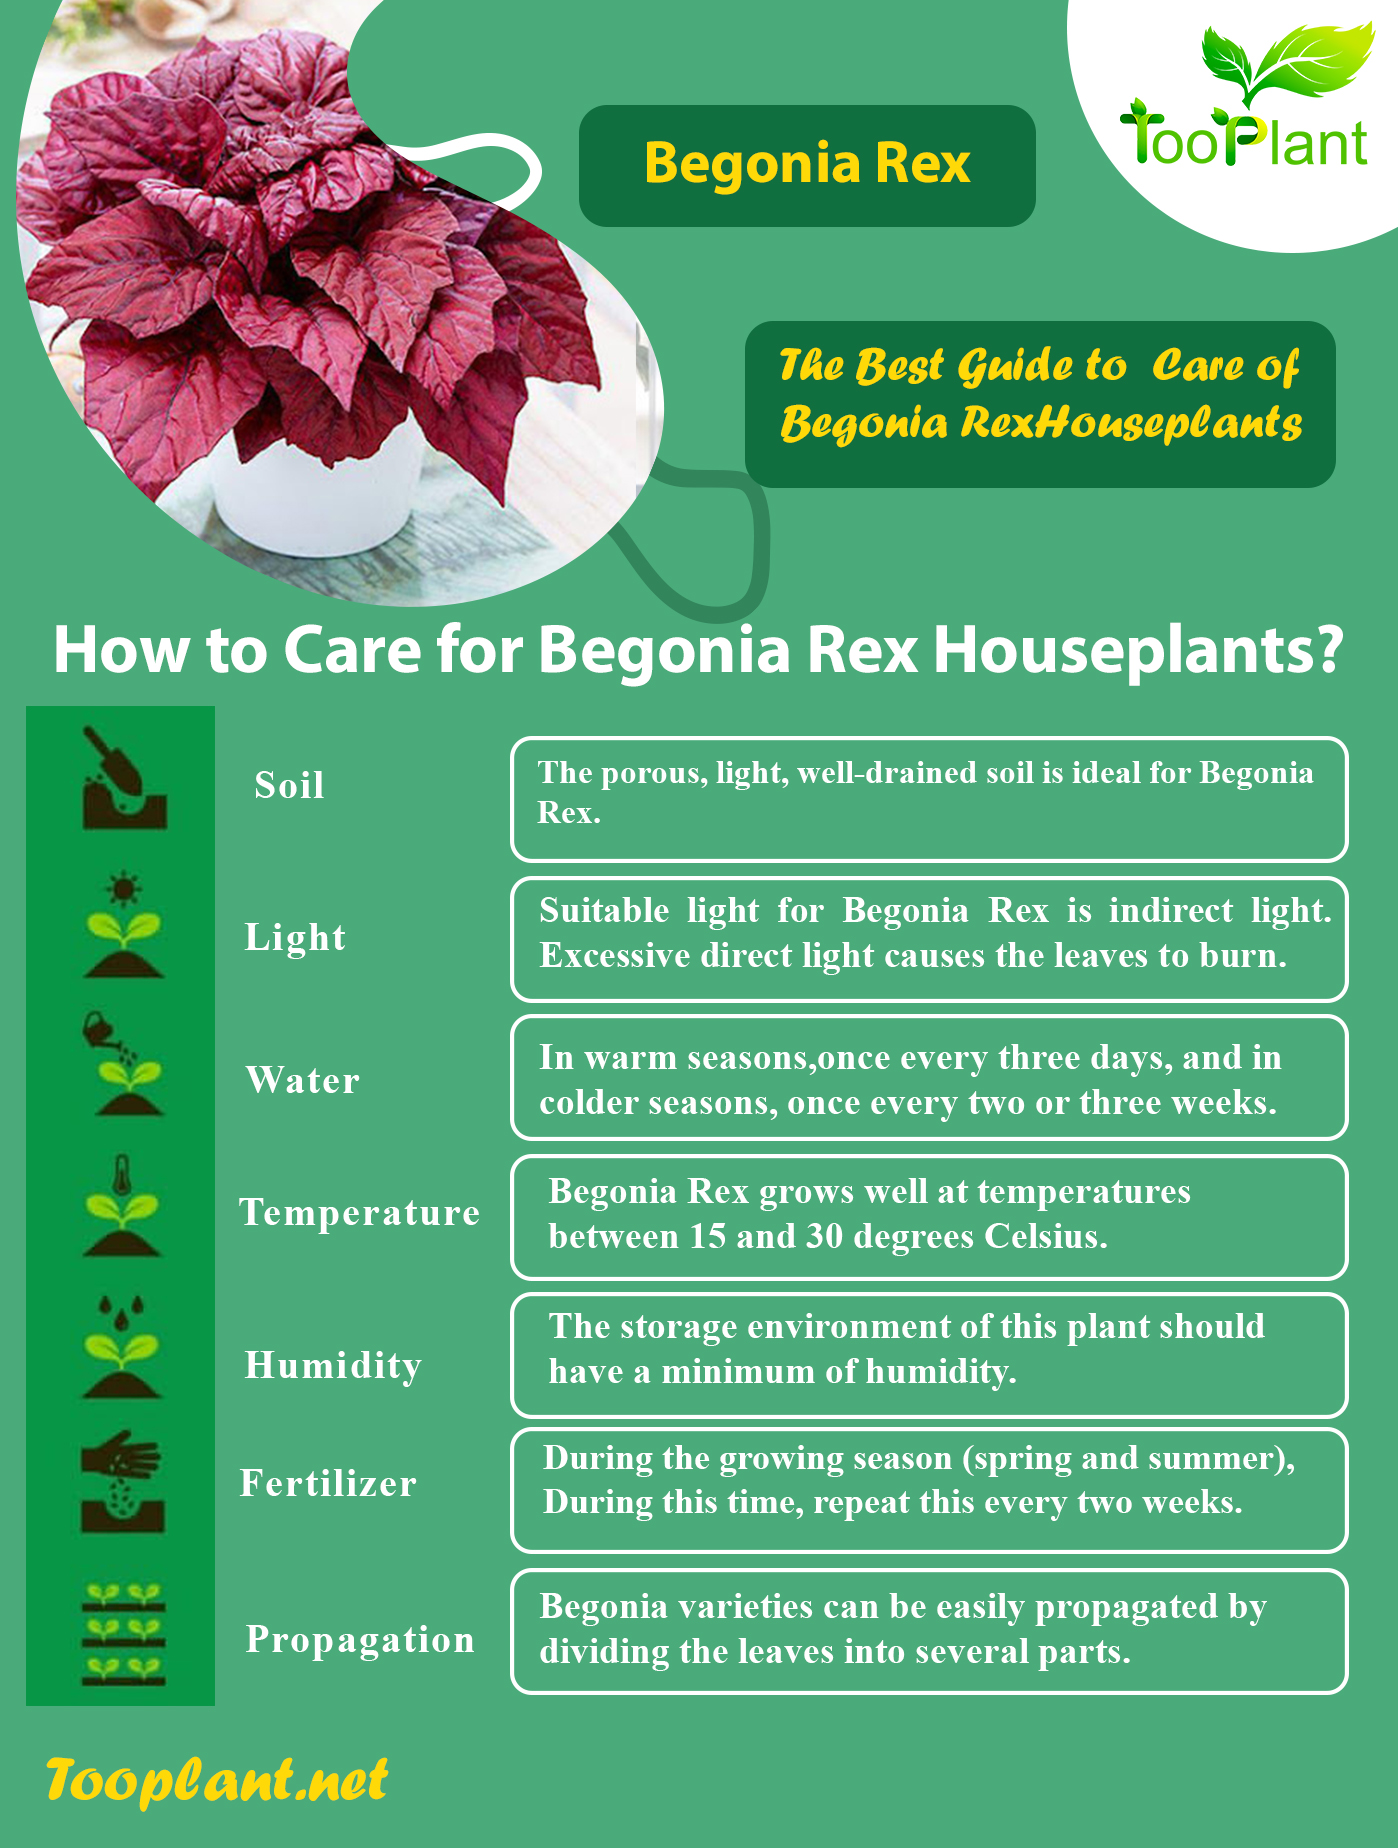 Infographic of Care for Begonia Rex Houseplants